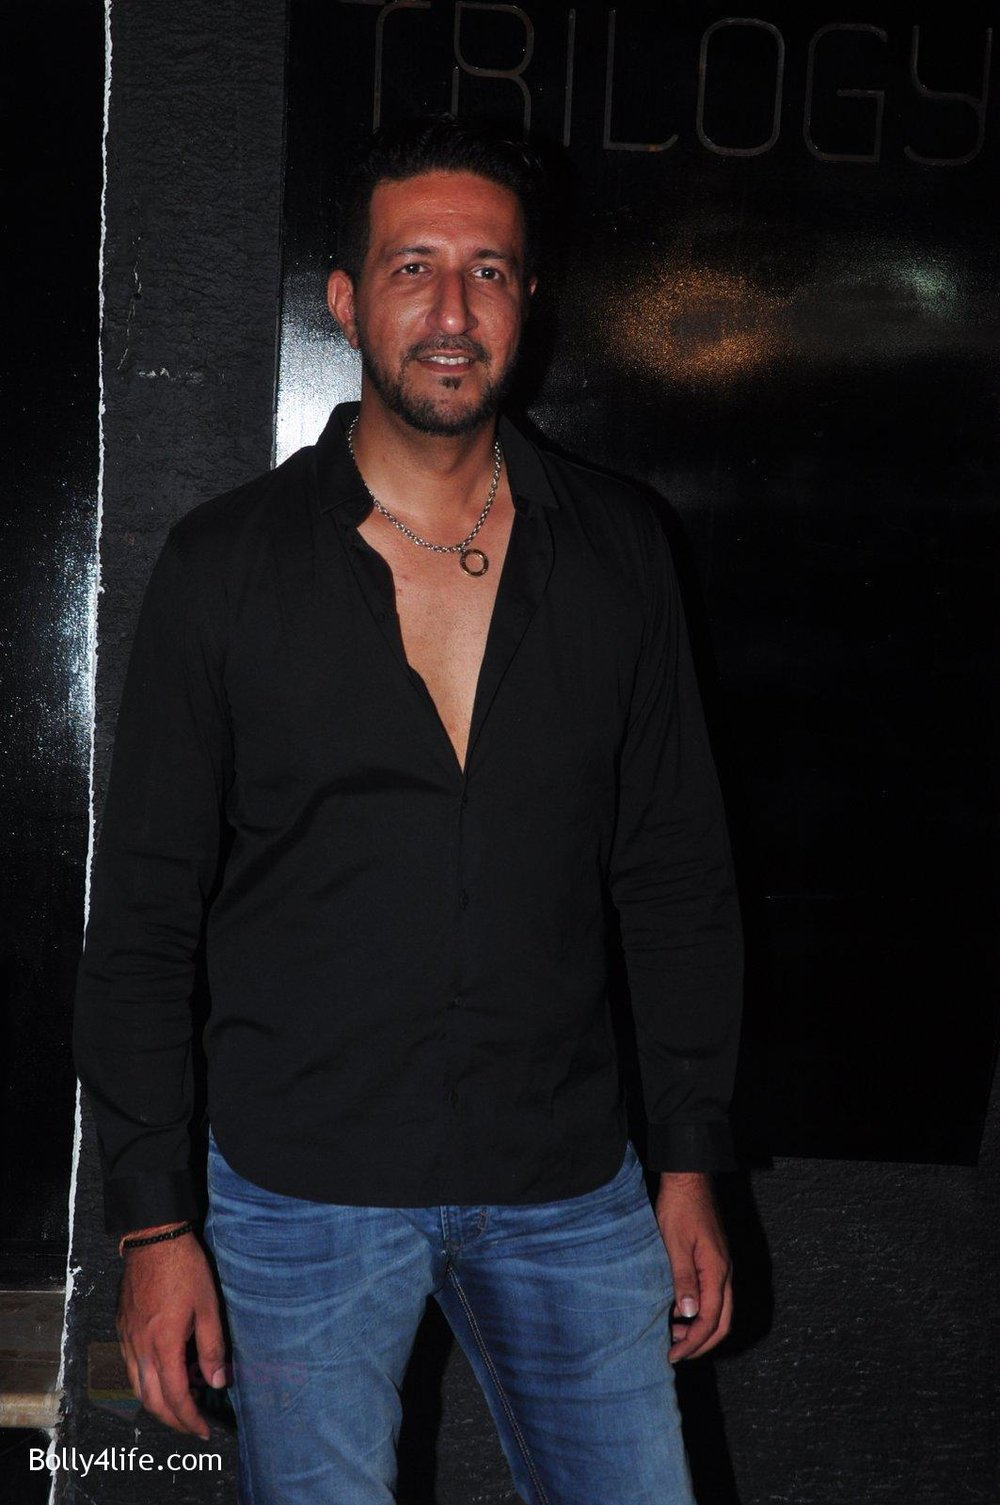 Sulaiman-Merchant-at-Trilogy-Bash-on-6th-Oct-2016-53.jpg